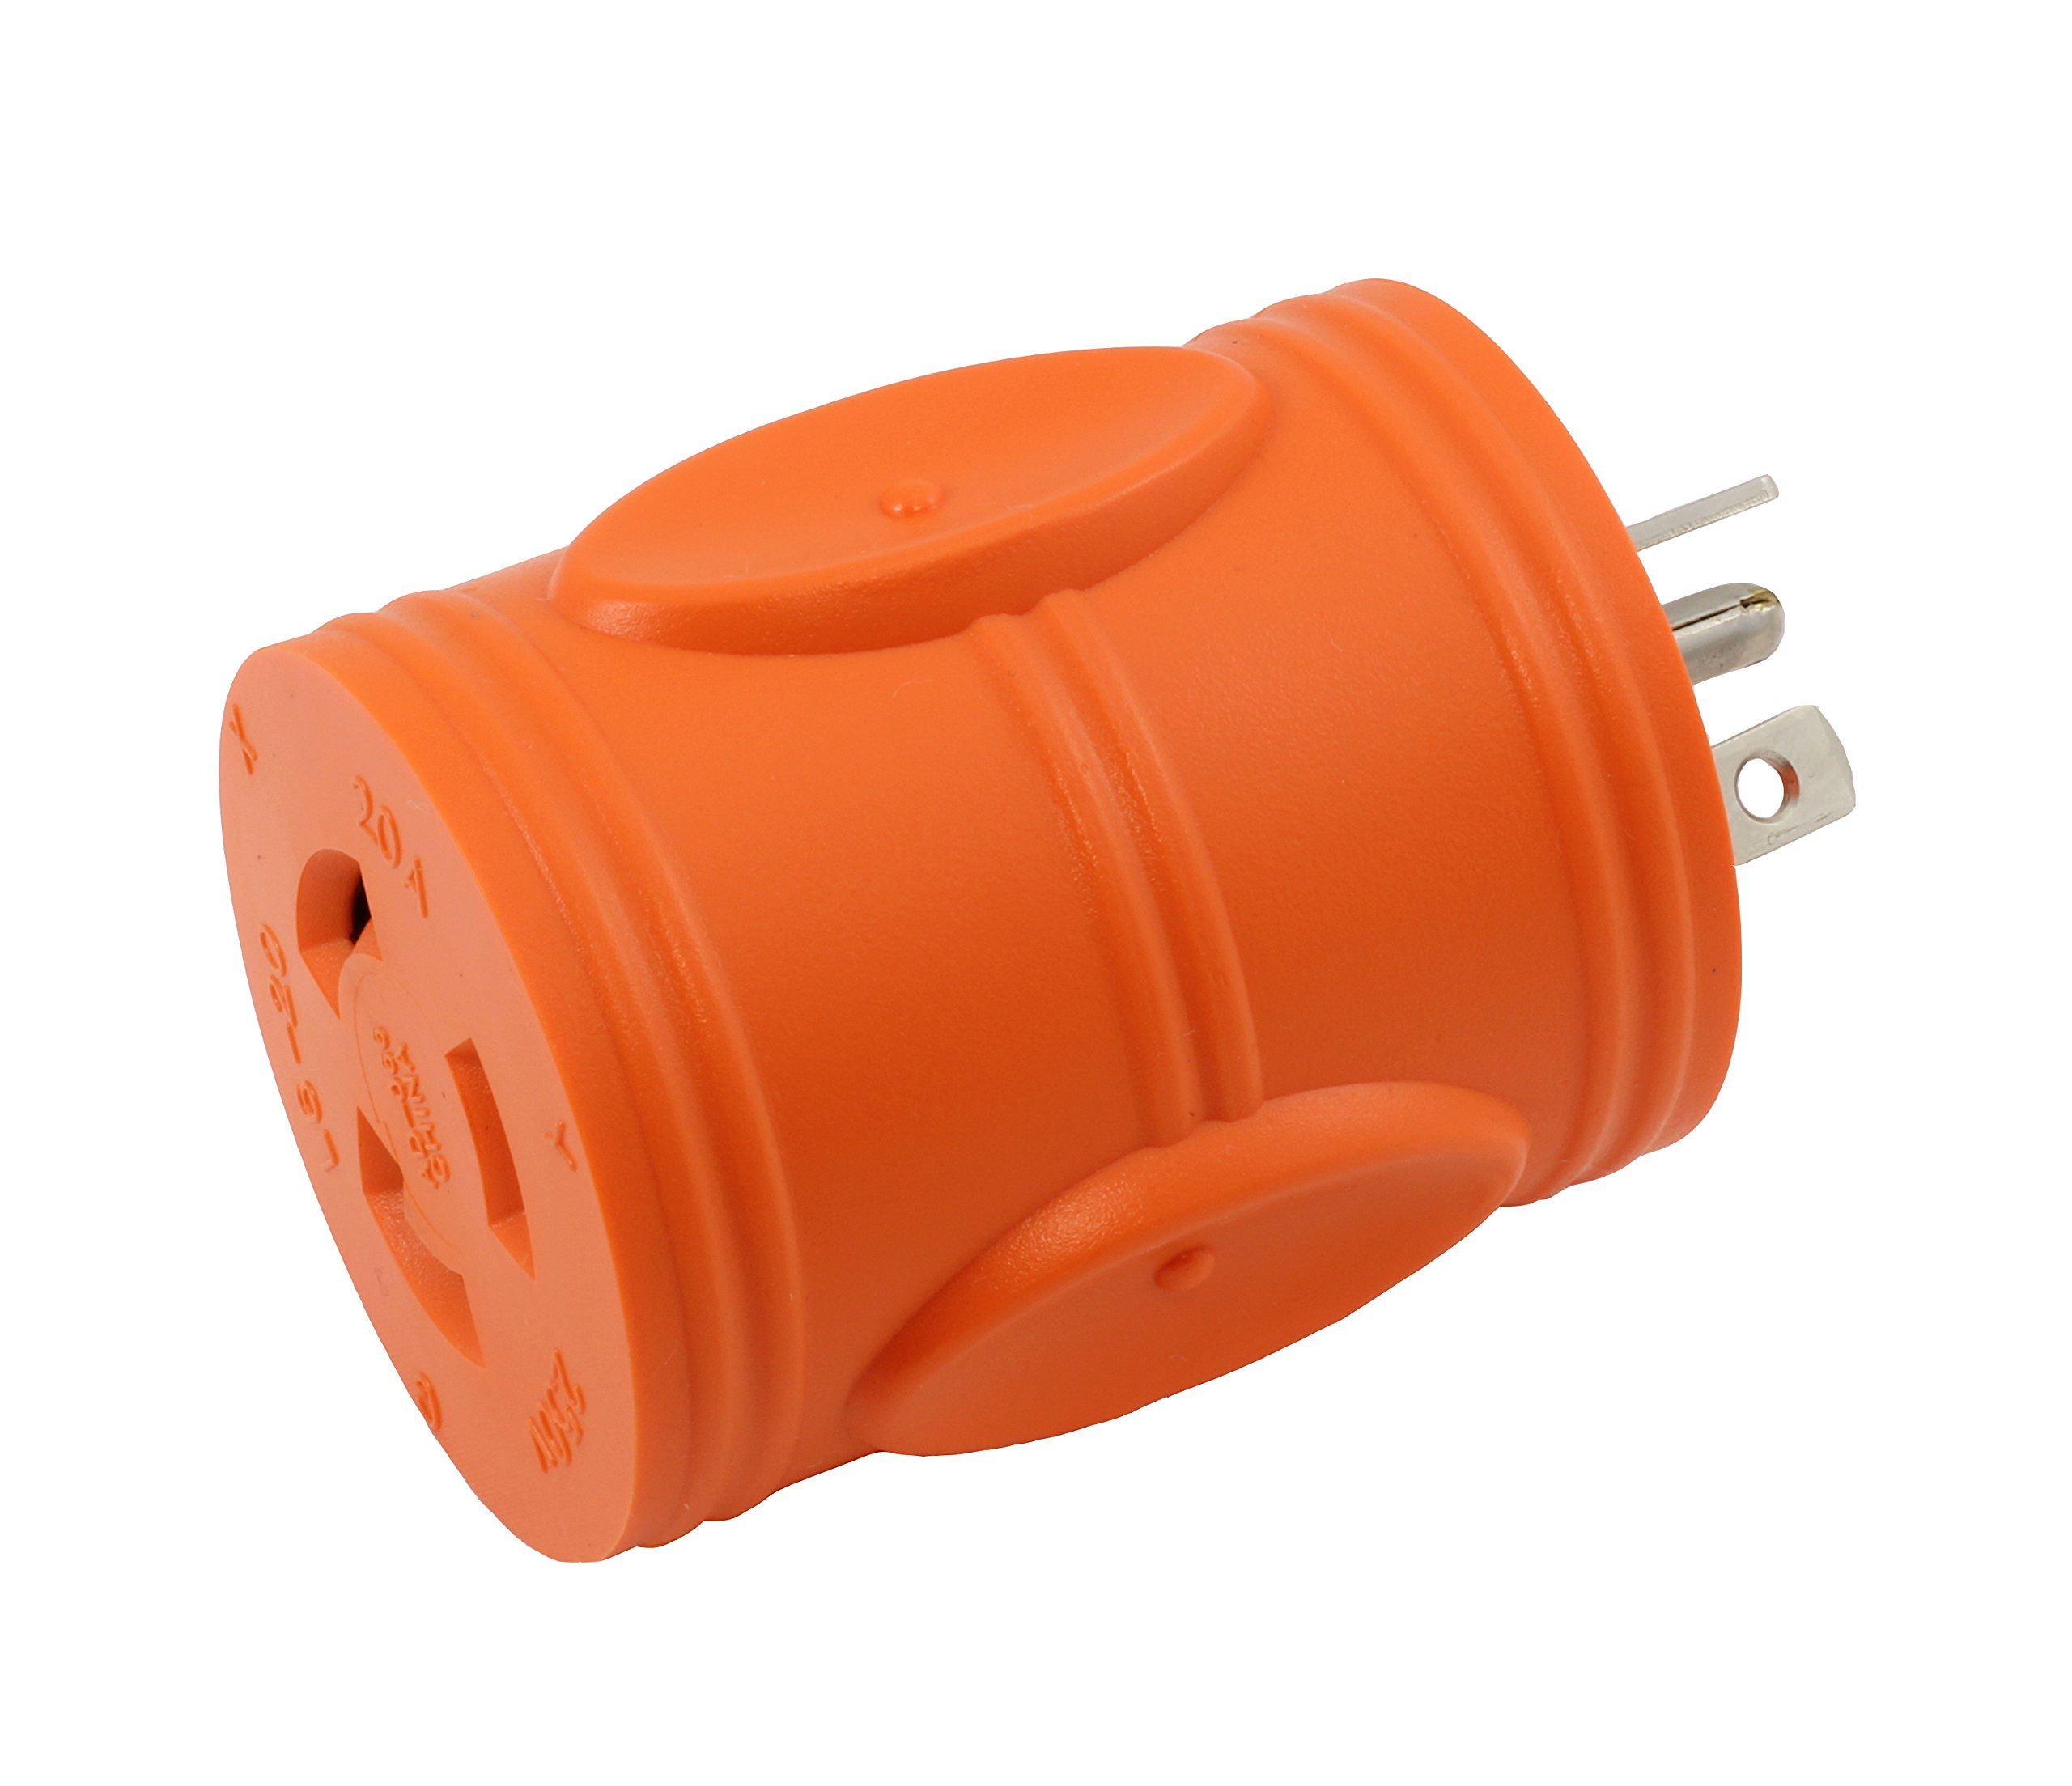 AC WORKS [AD620L620] Locking Adapter NEMA 6-20P 20Amp 250Volt Male Plug to NEMA L6-20R 20Amp 250Volt Locking Female Connector